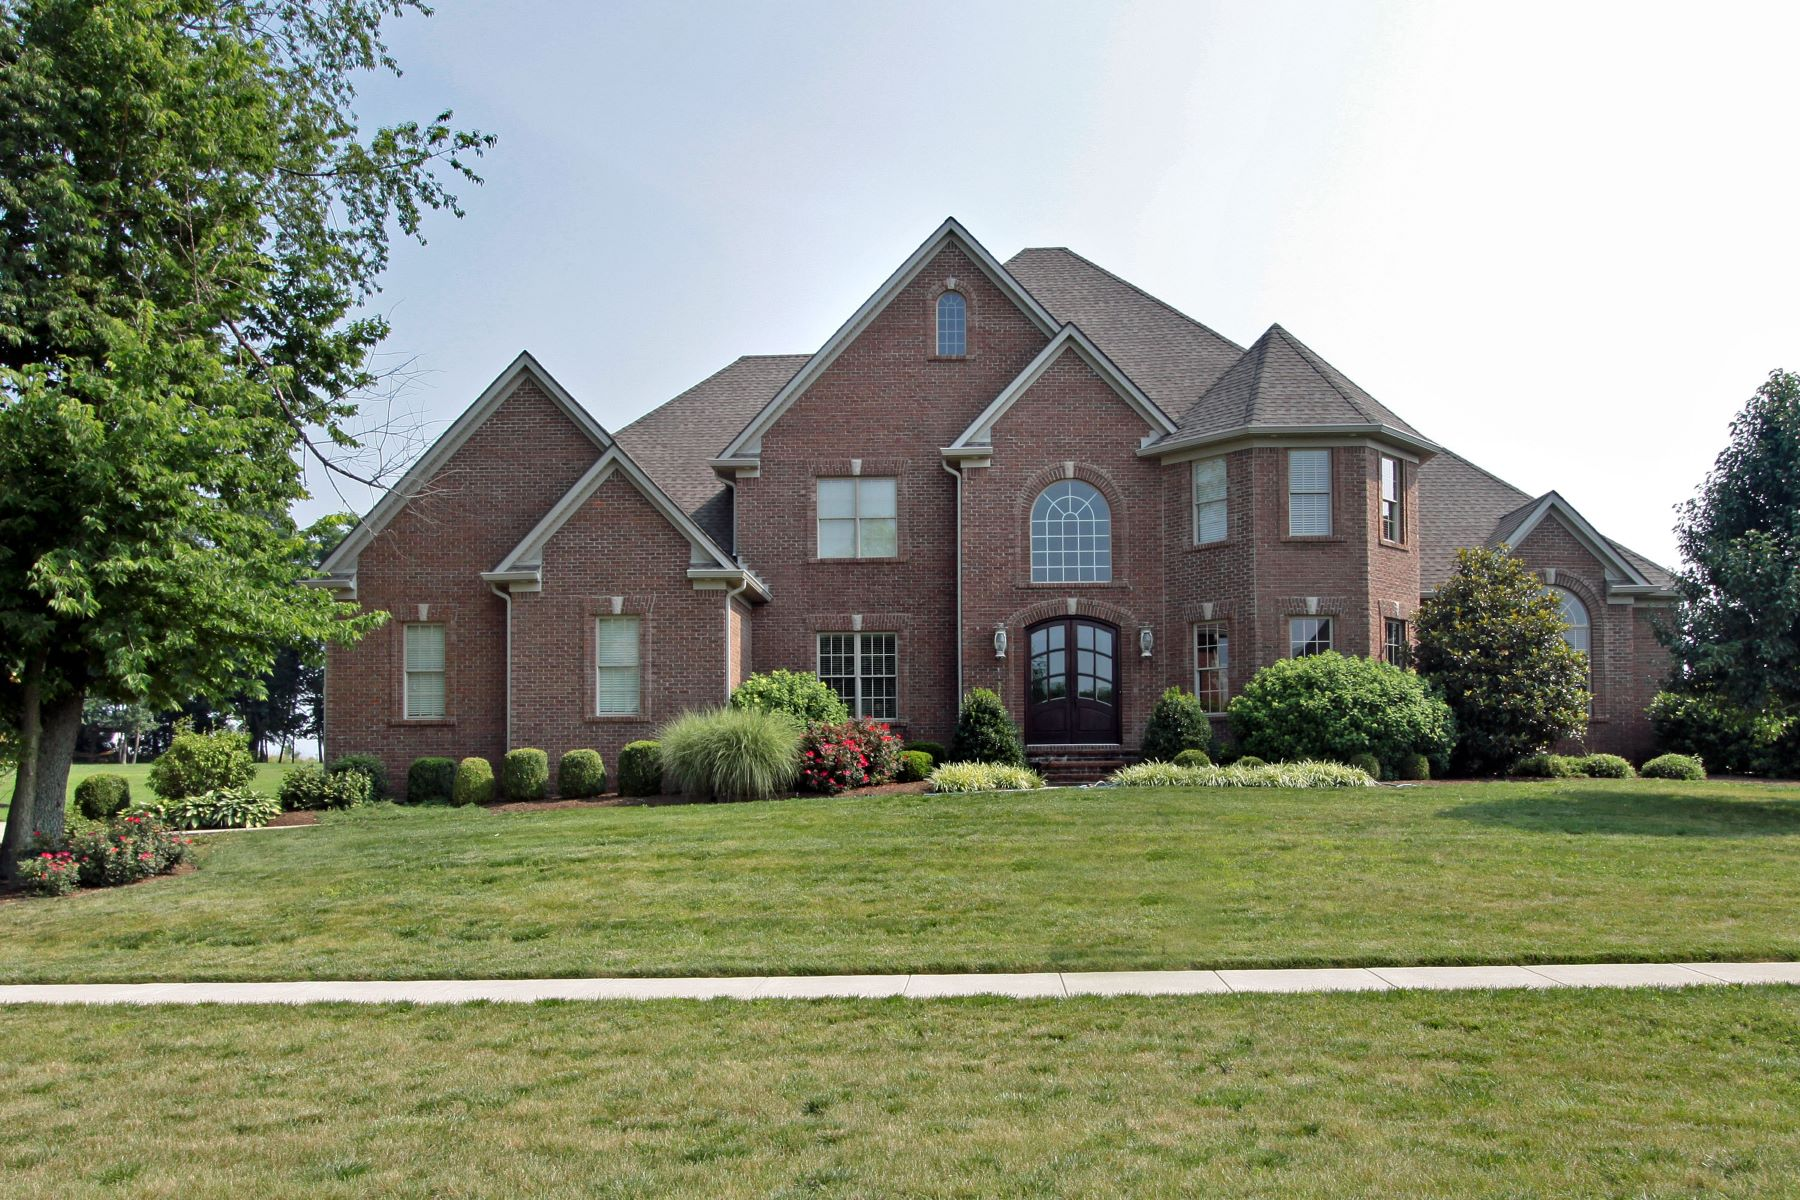 Single Family Home for Sale at 206 Golf Club Drive Nicholasville, Kentucky 40356 United States